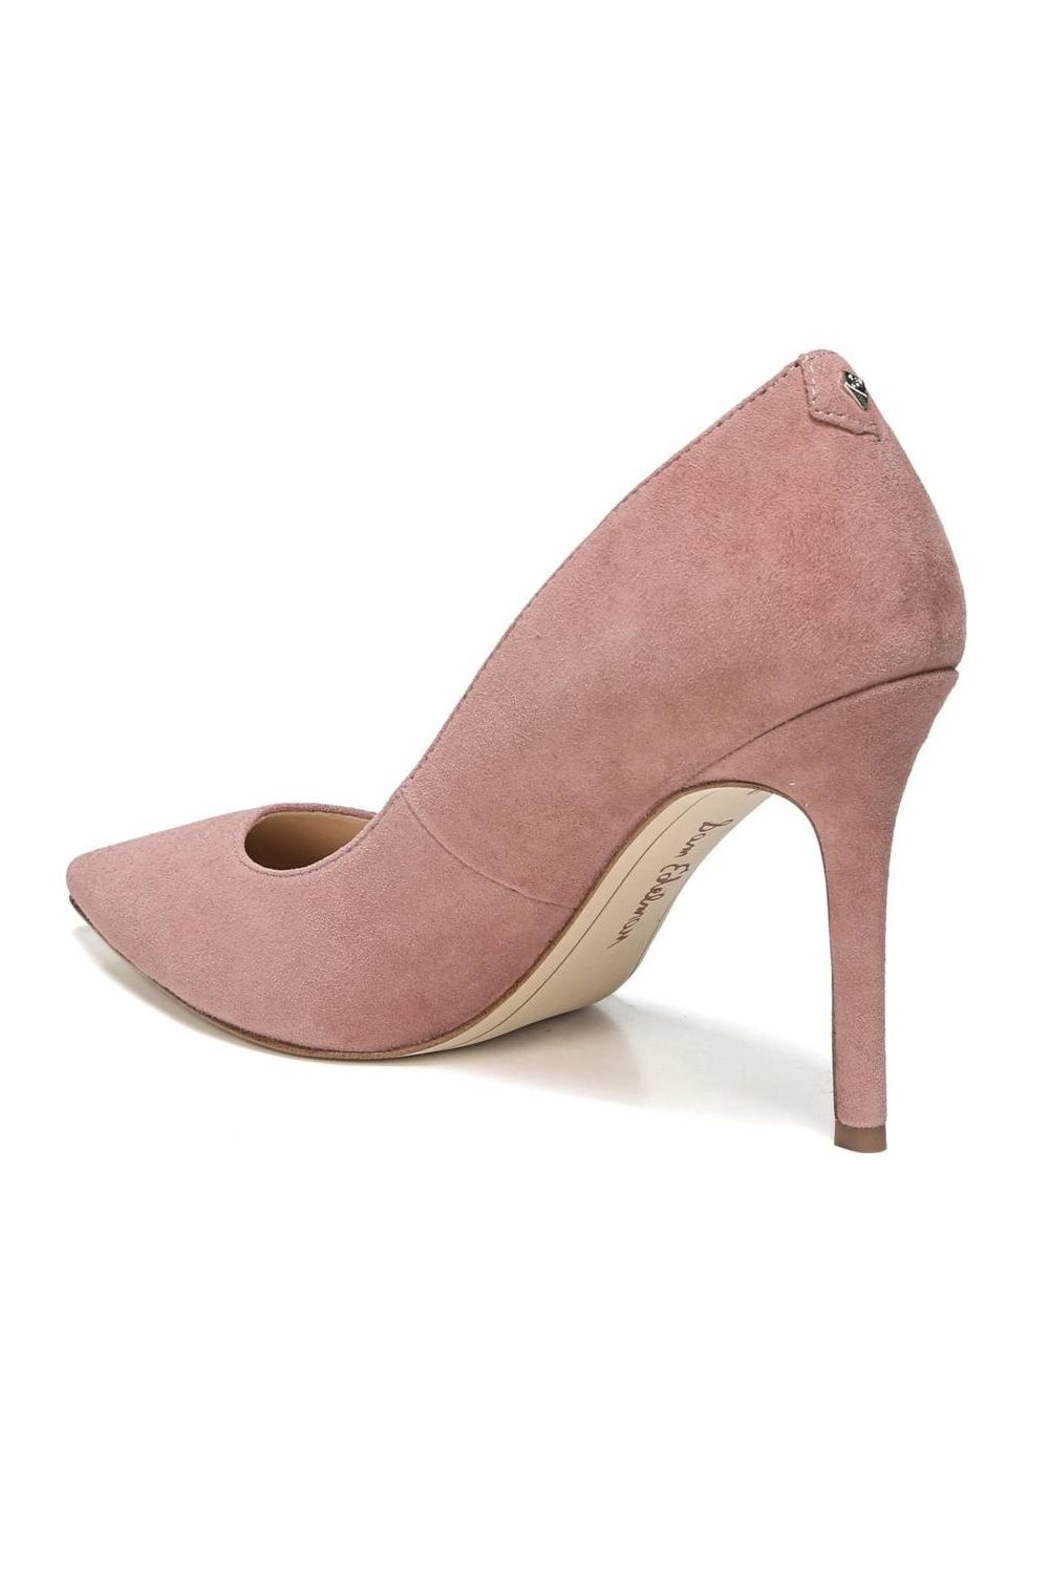 4979fb5b3d7f Sam Edelman Hazel Dusty Rose from Hudson Valley by Bfree — Shoptiques